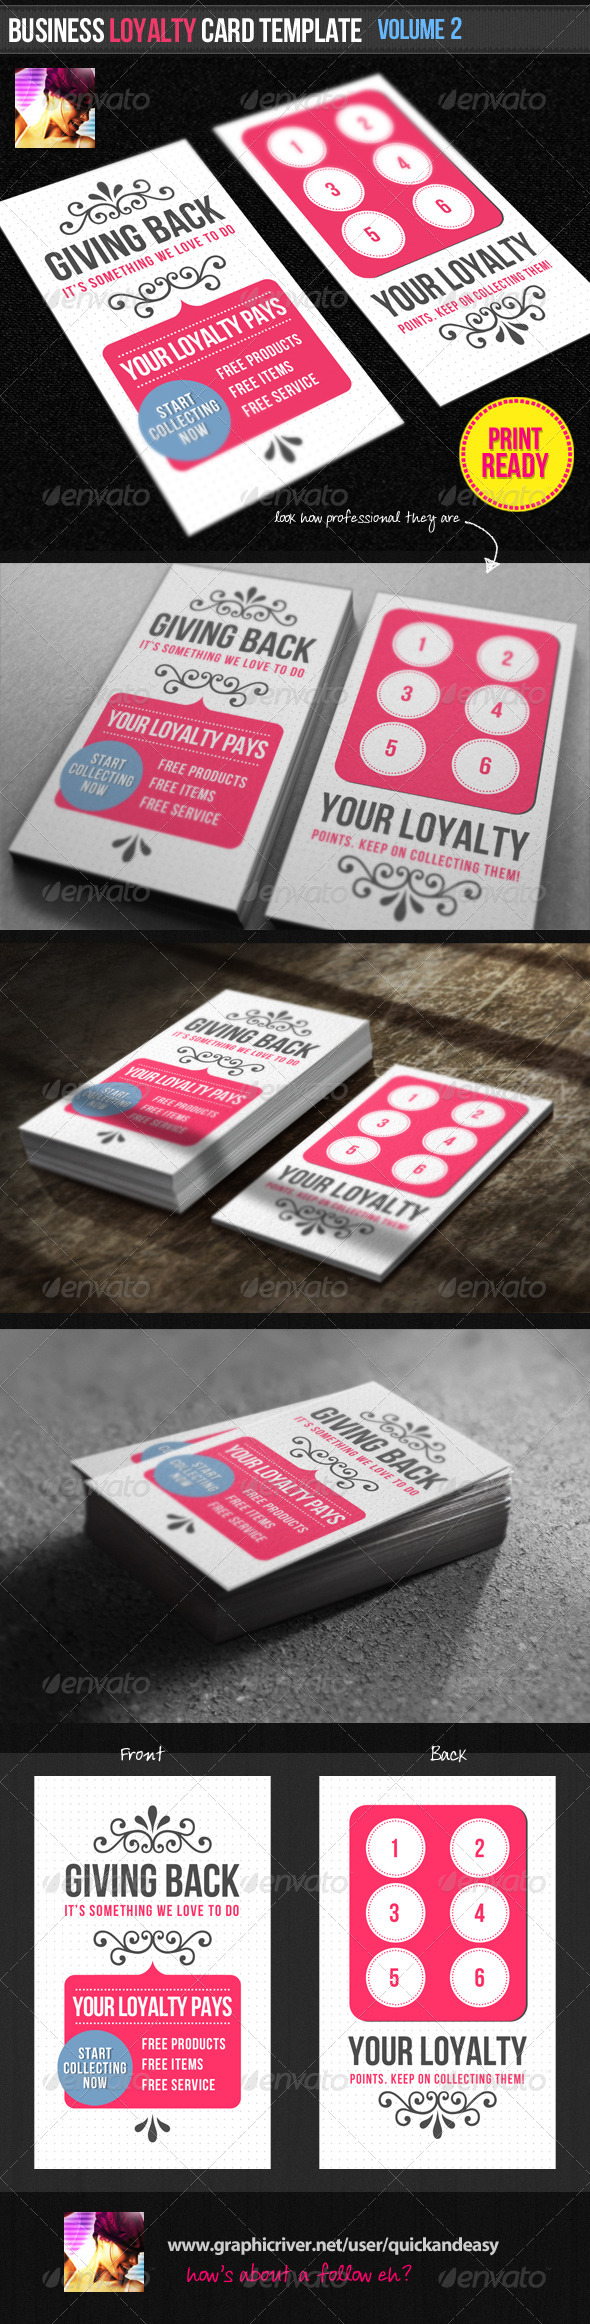 Business Loyalty Card Template Vol By Quickandeasy GraphicRiver - Loyalty card template